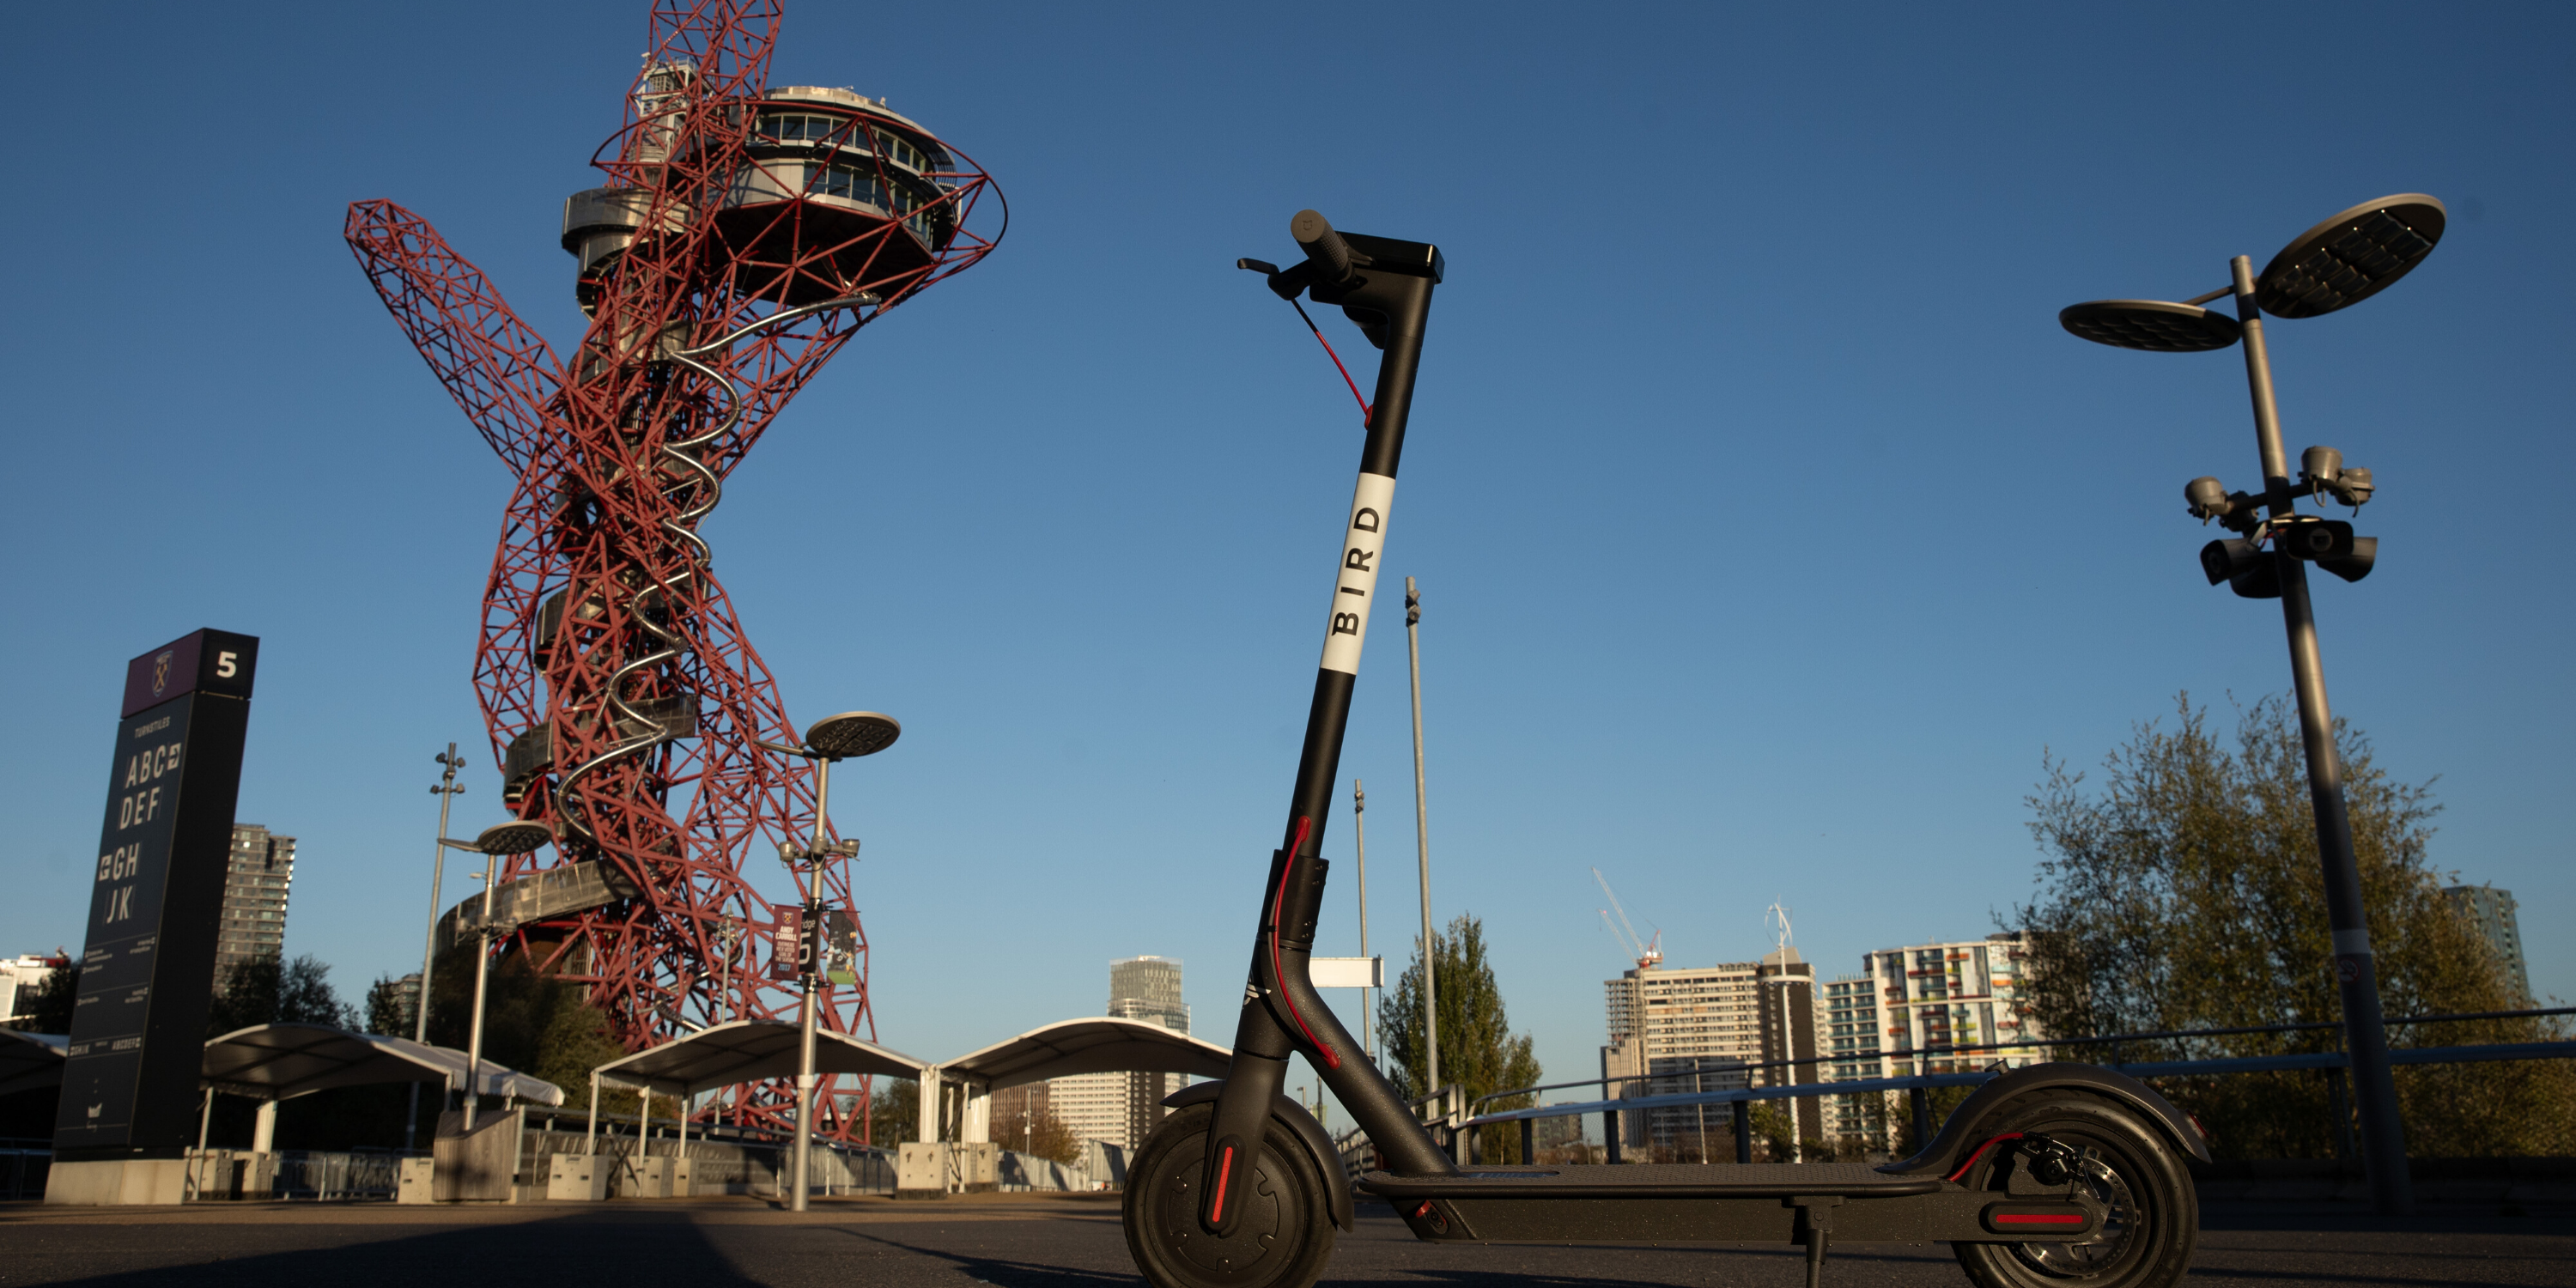 Bird e-scooter in Queen Elizabeth Olympic Park